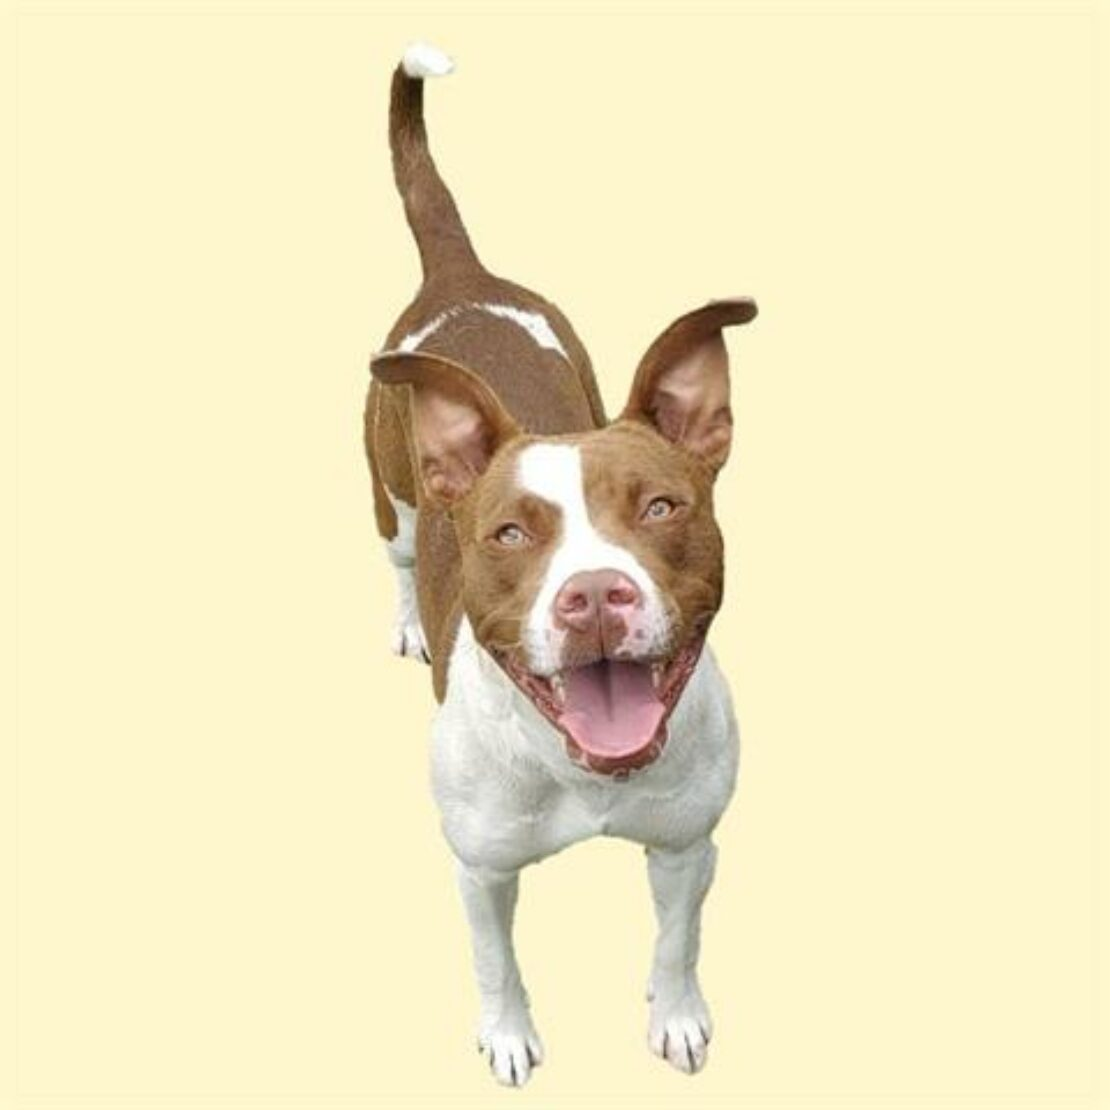 boxer/pittie mix with white muzzle, chest and legs and brown mask, ears, back and tail stands against a yellow backgrouns.